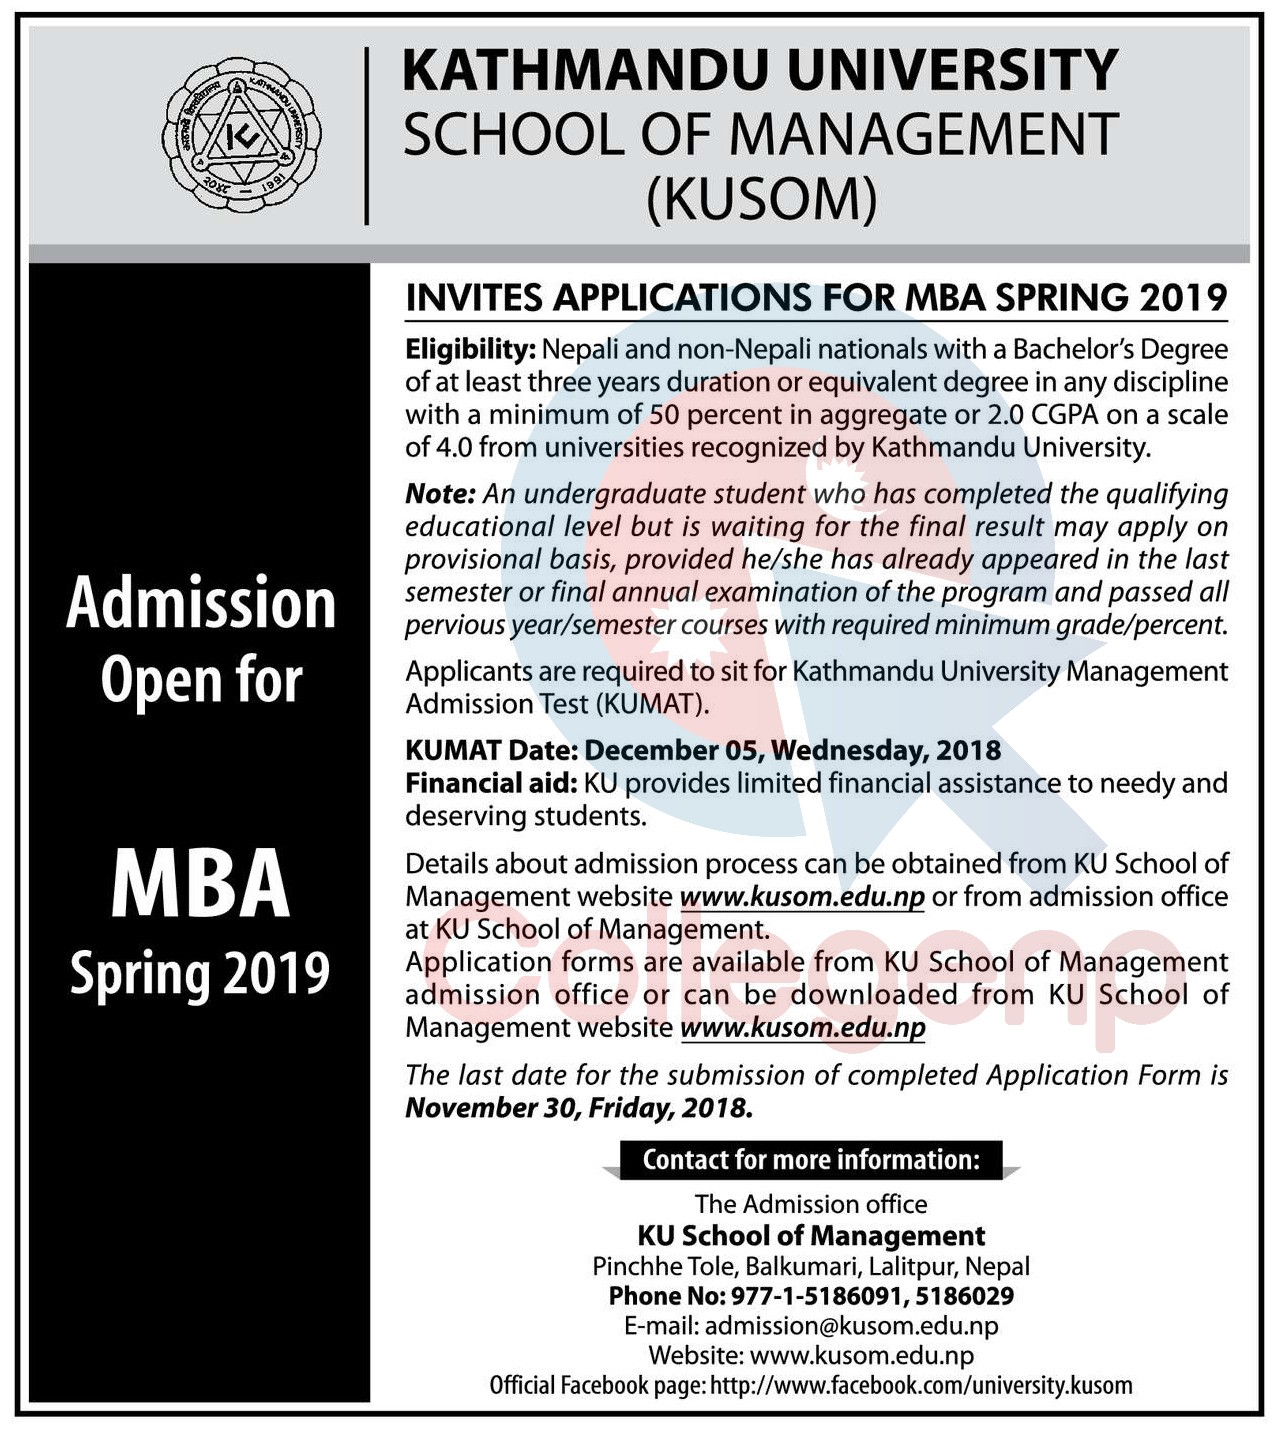 Kathmandu University School of Management